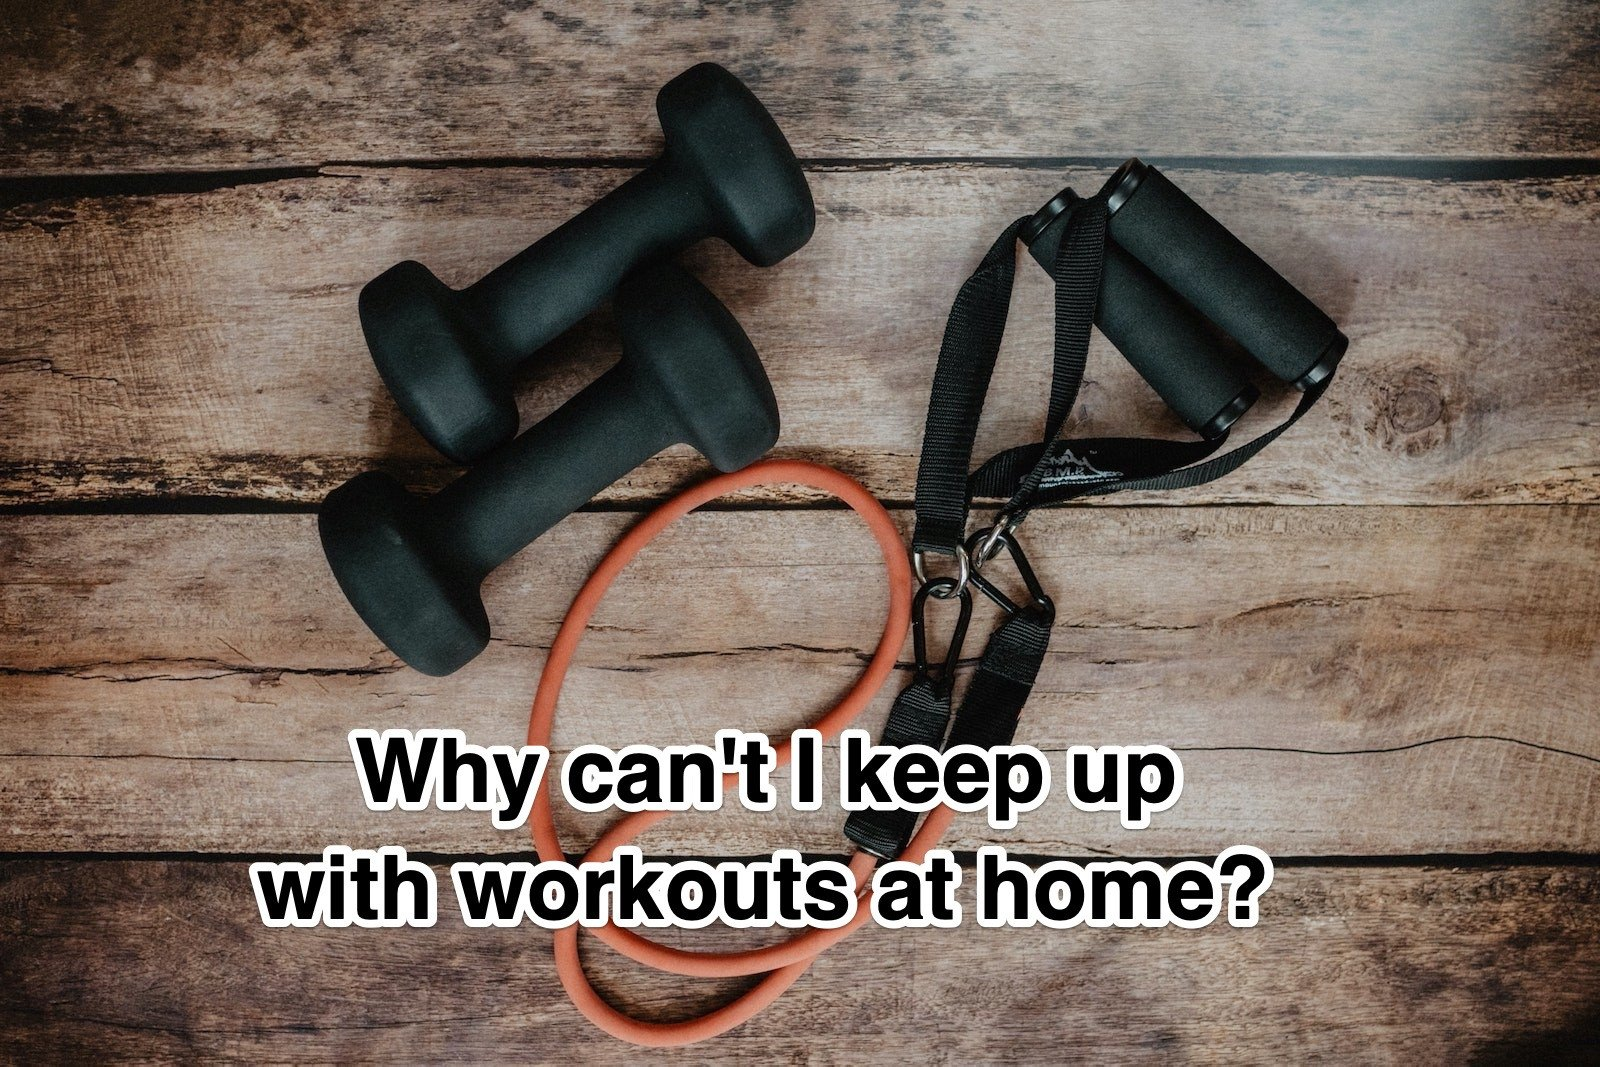 Why can't I keep up with workouts at home?